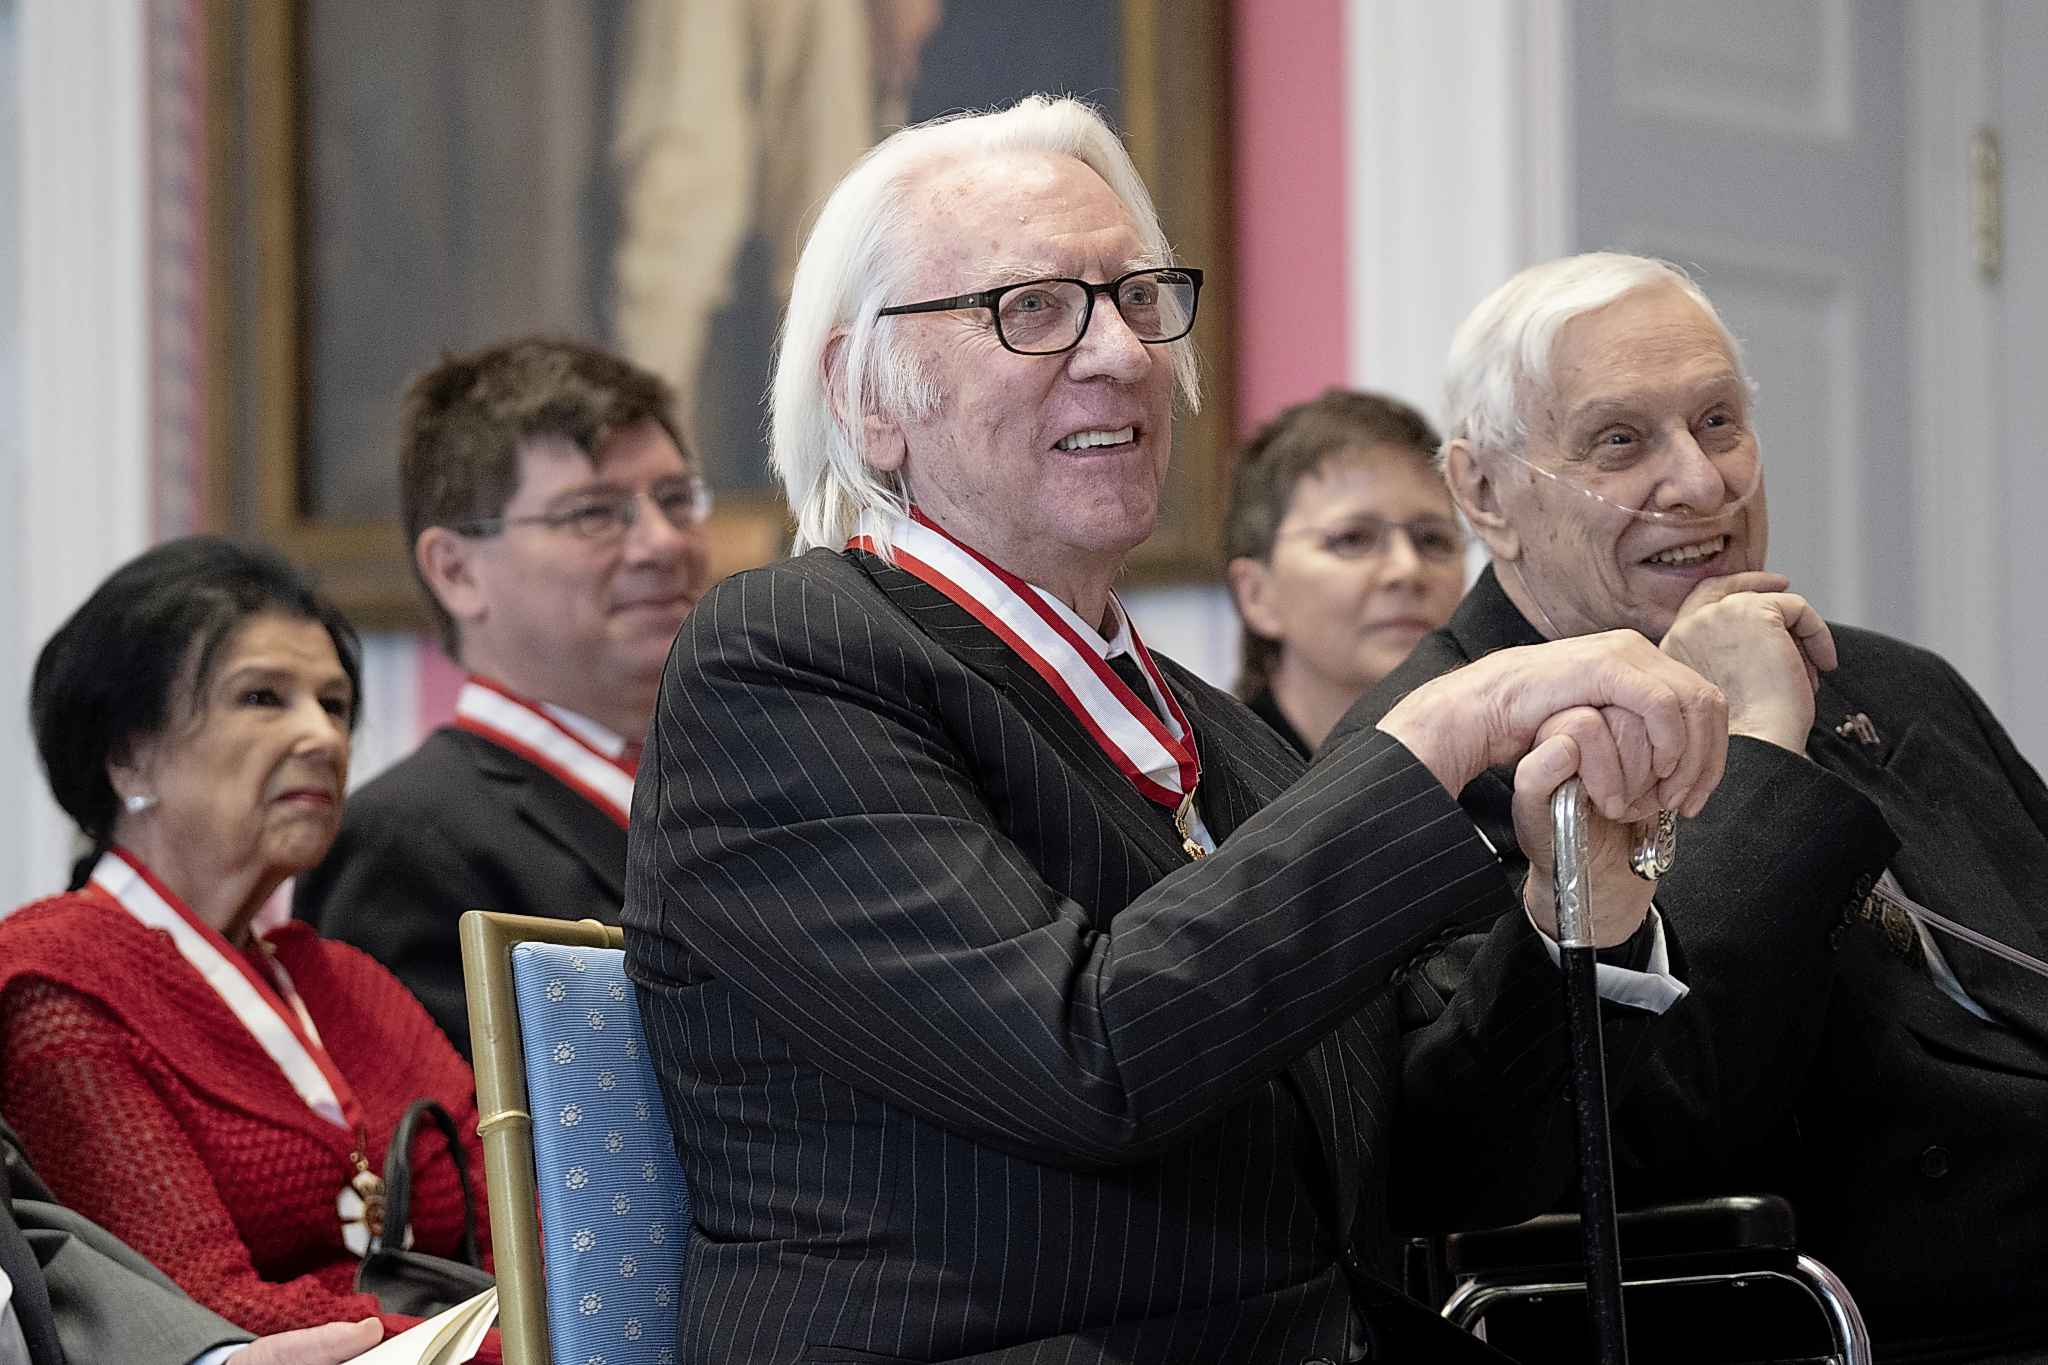 Actor Donald Sutherland reacts after being invested as a Companion of the Order of Canada. THE CANADIAN PRESS/Chris Wattie